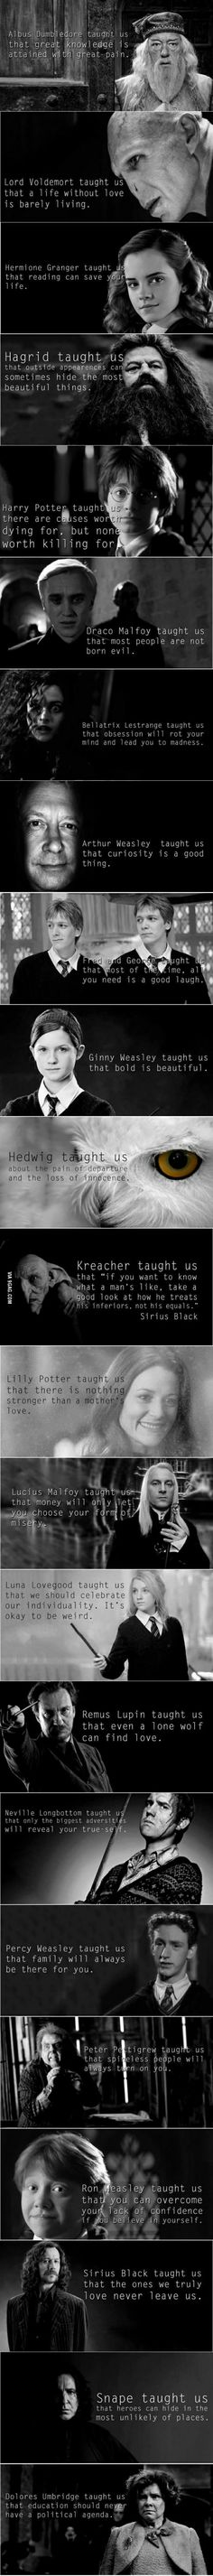 And the moral of Harry Potter is...